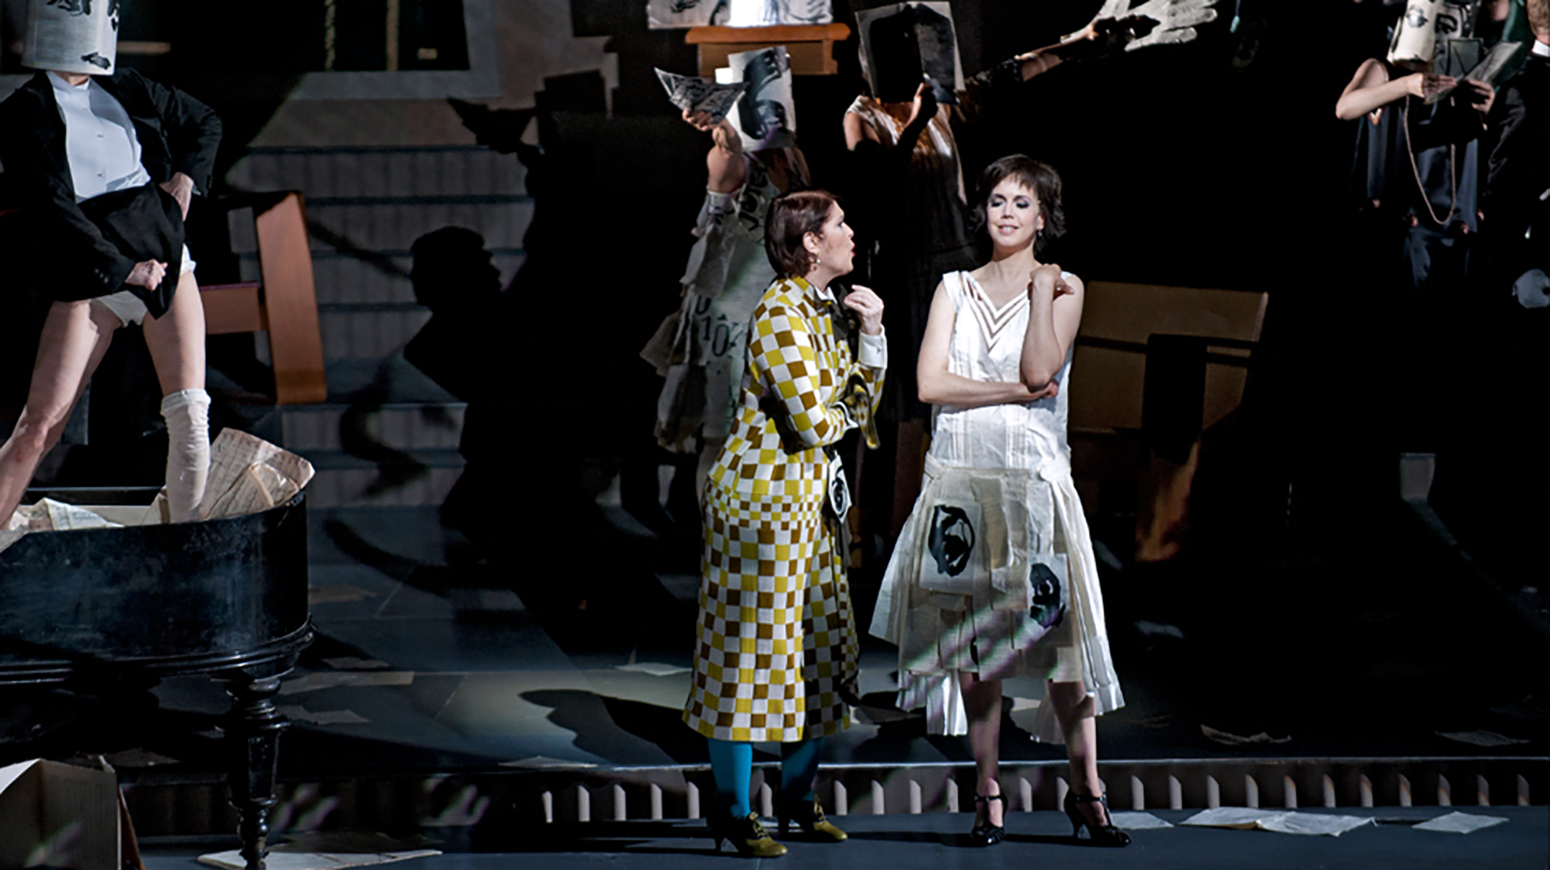 Another scene from the Dutch National Opera production. (Credit: Dutch National Opera)